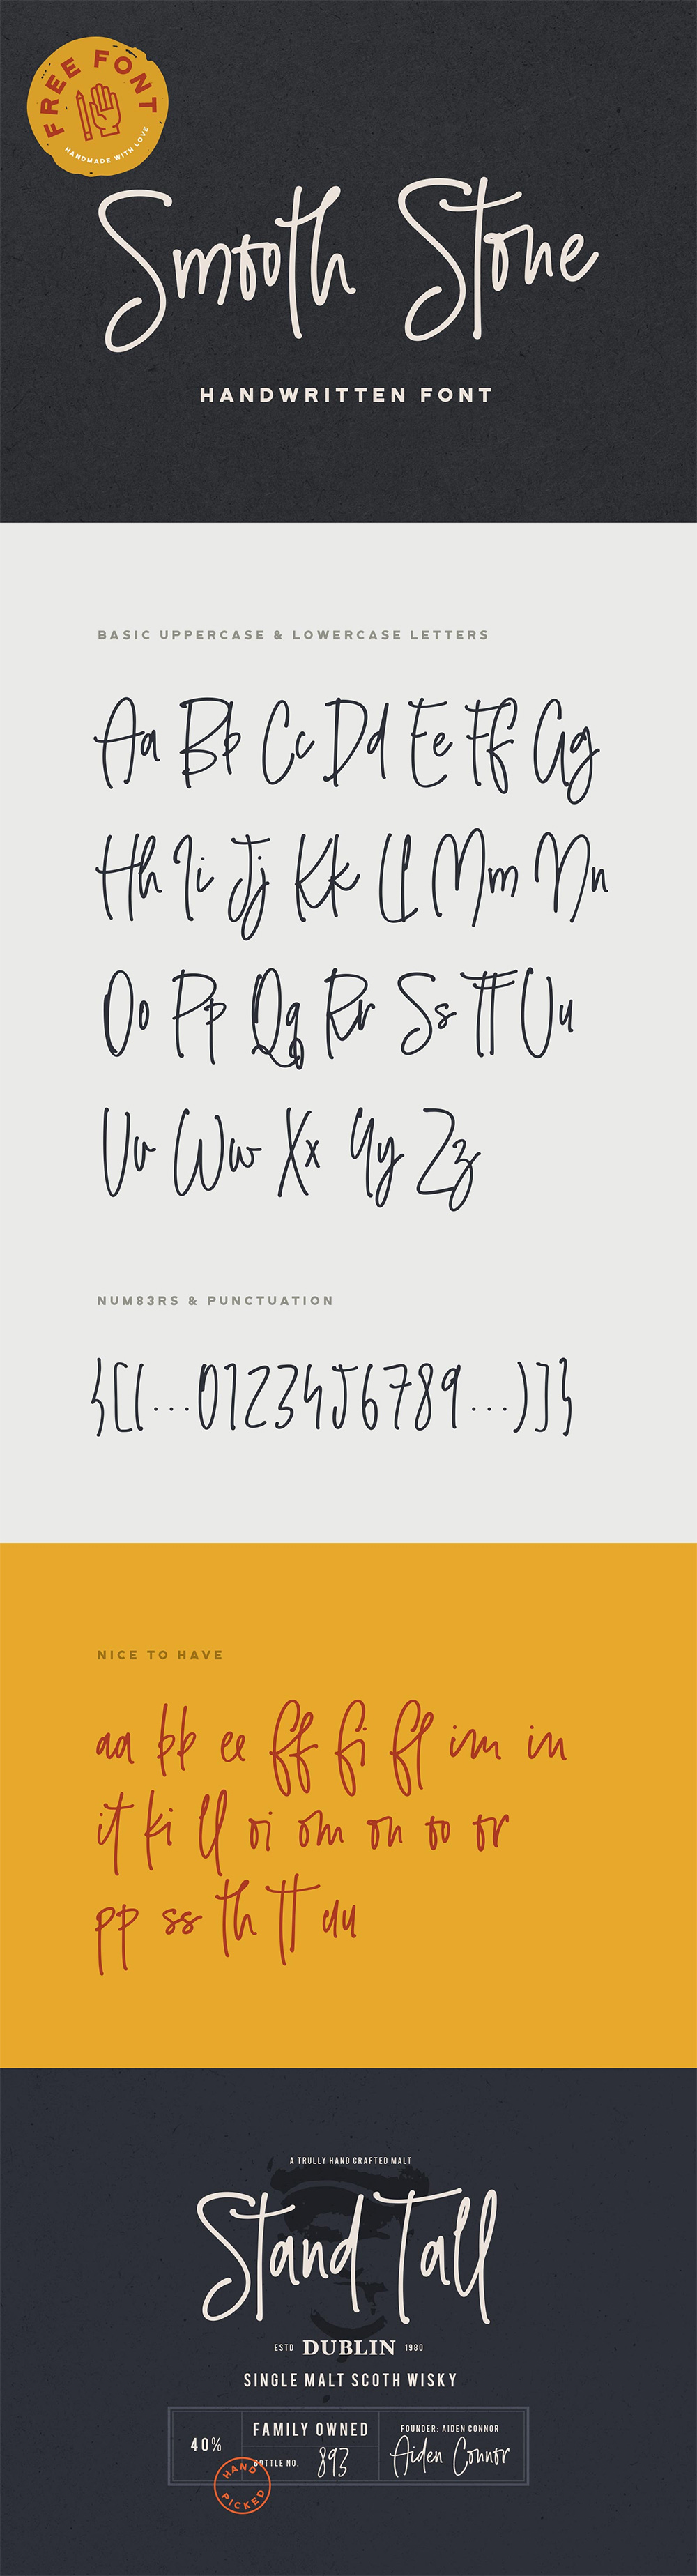 Smooth Stone - Free Handwritten Font